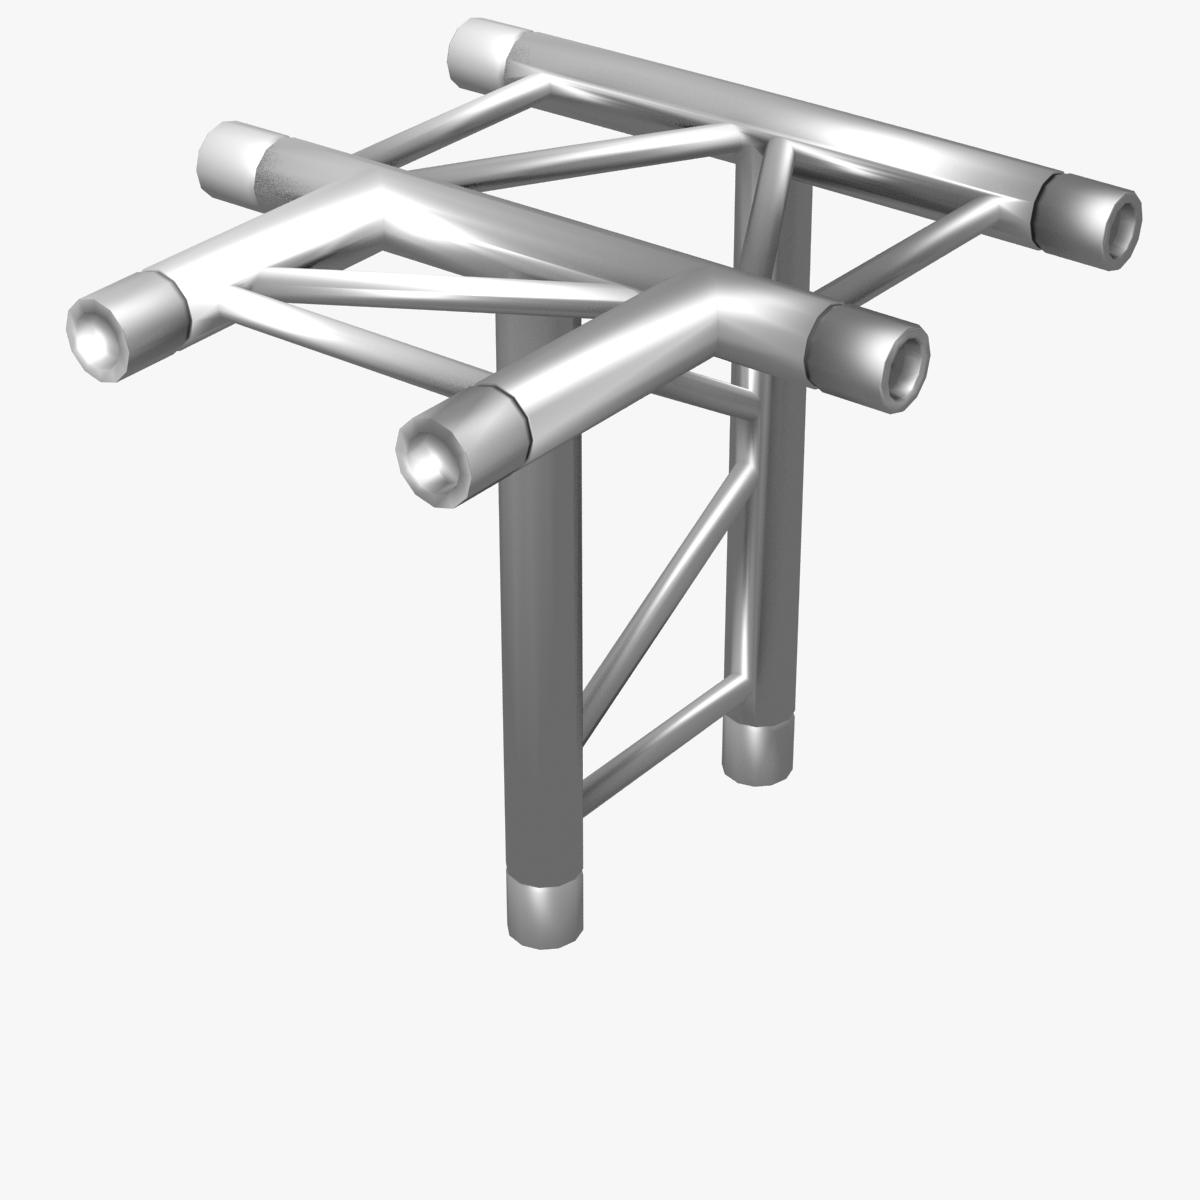 beam trusses (collection 24 modular pieces) 3d model 3ds max dxf fbx bmp blend c4d dae other obj 268741